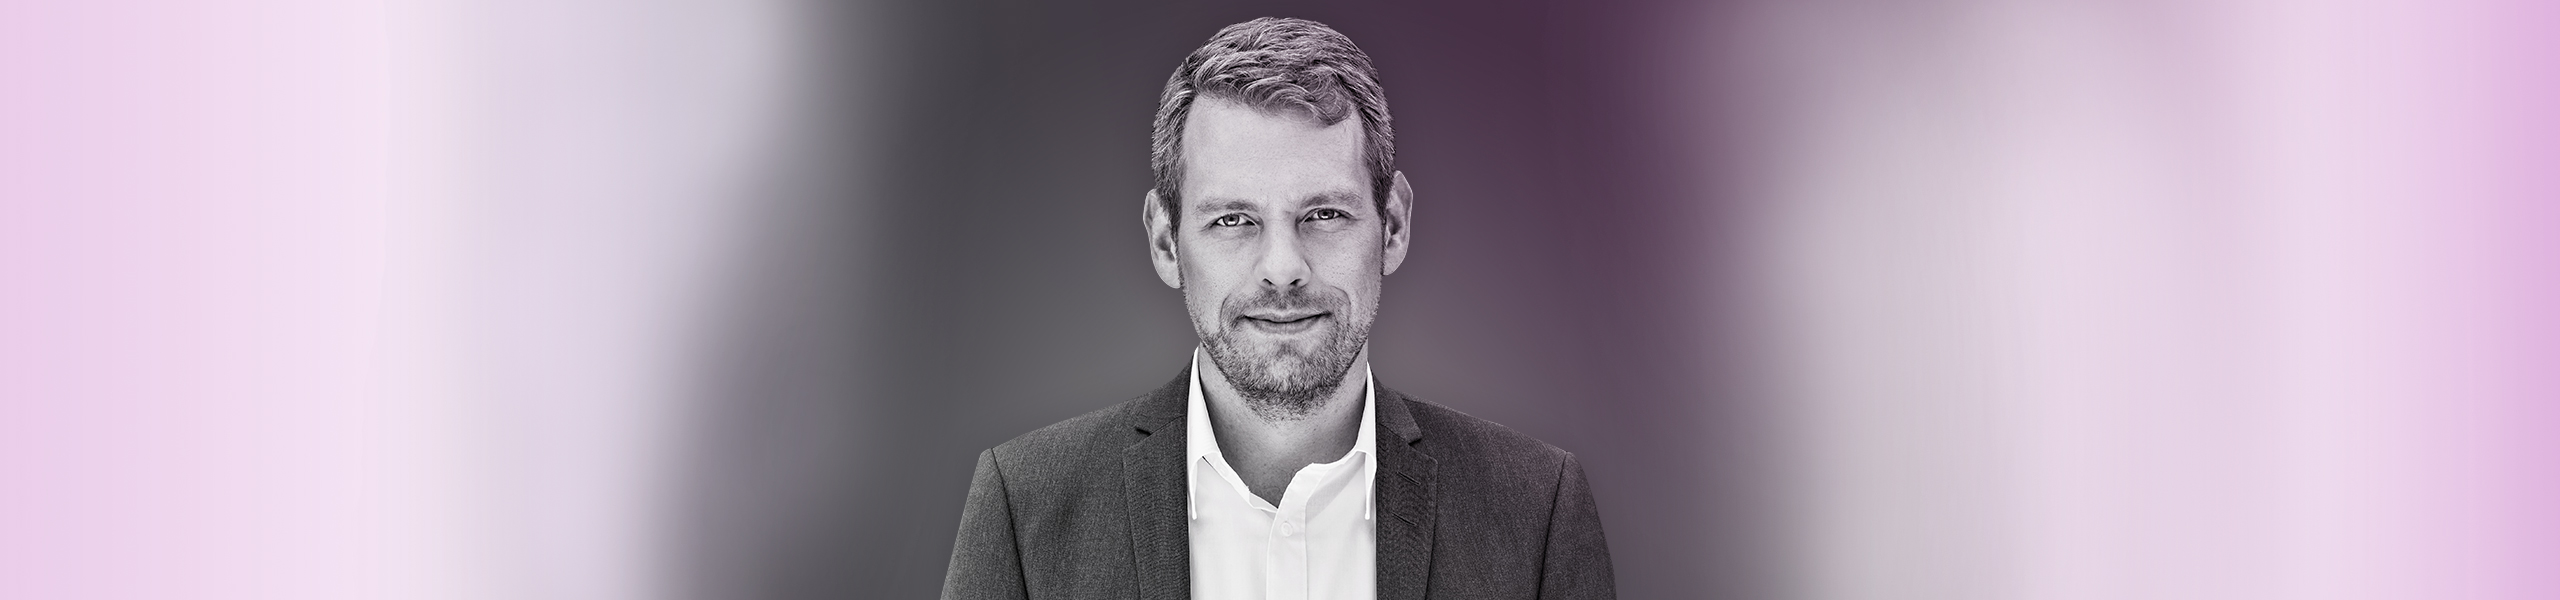 Matthias Schiffer Senior Consultant bei Center for Strategic Projects